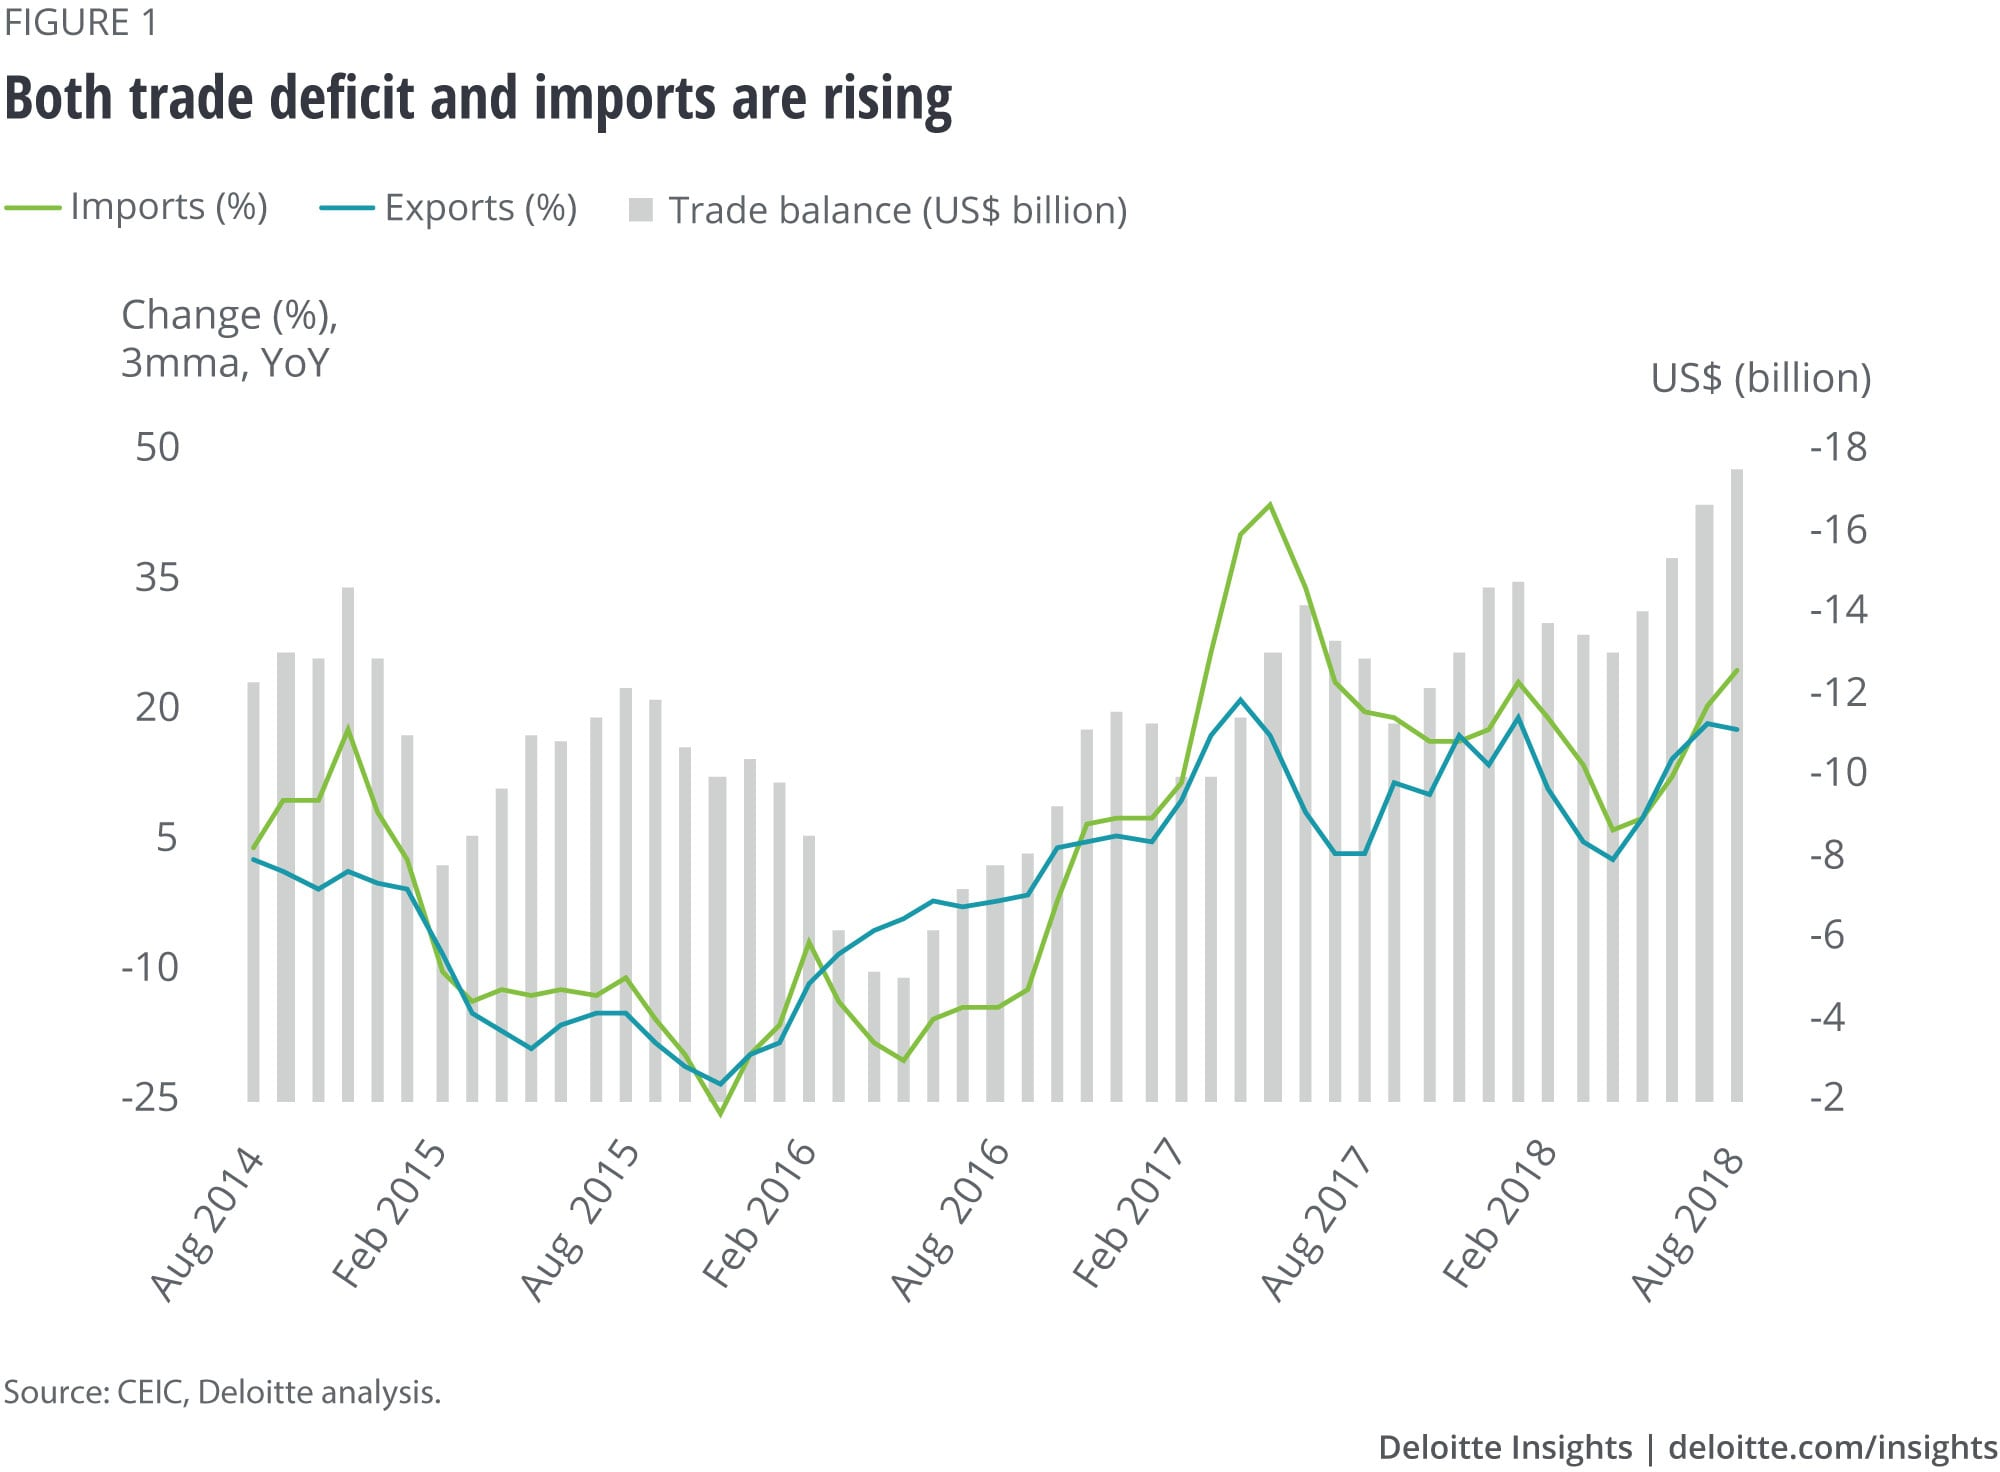 Both trade deficit and imports are rising